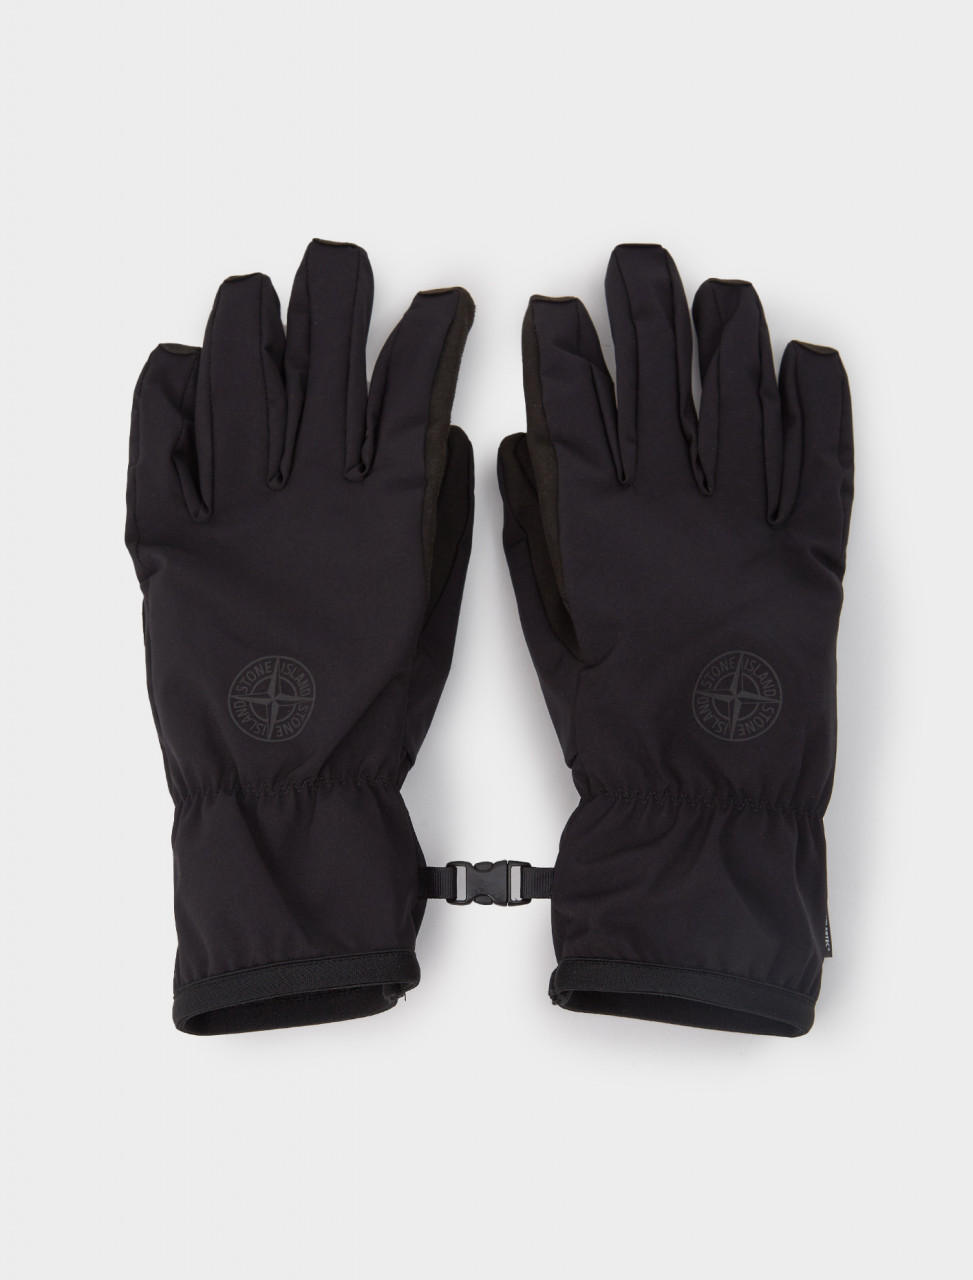 241-MO731592429-V0029 STONE ISLAND GLOVES BLACK